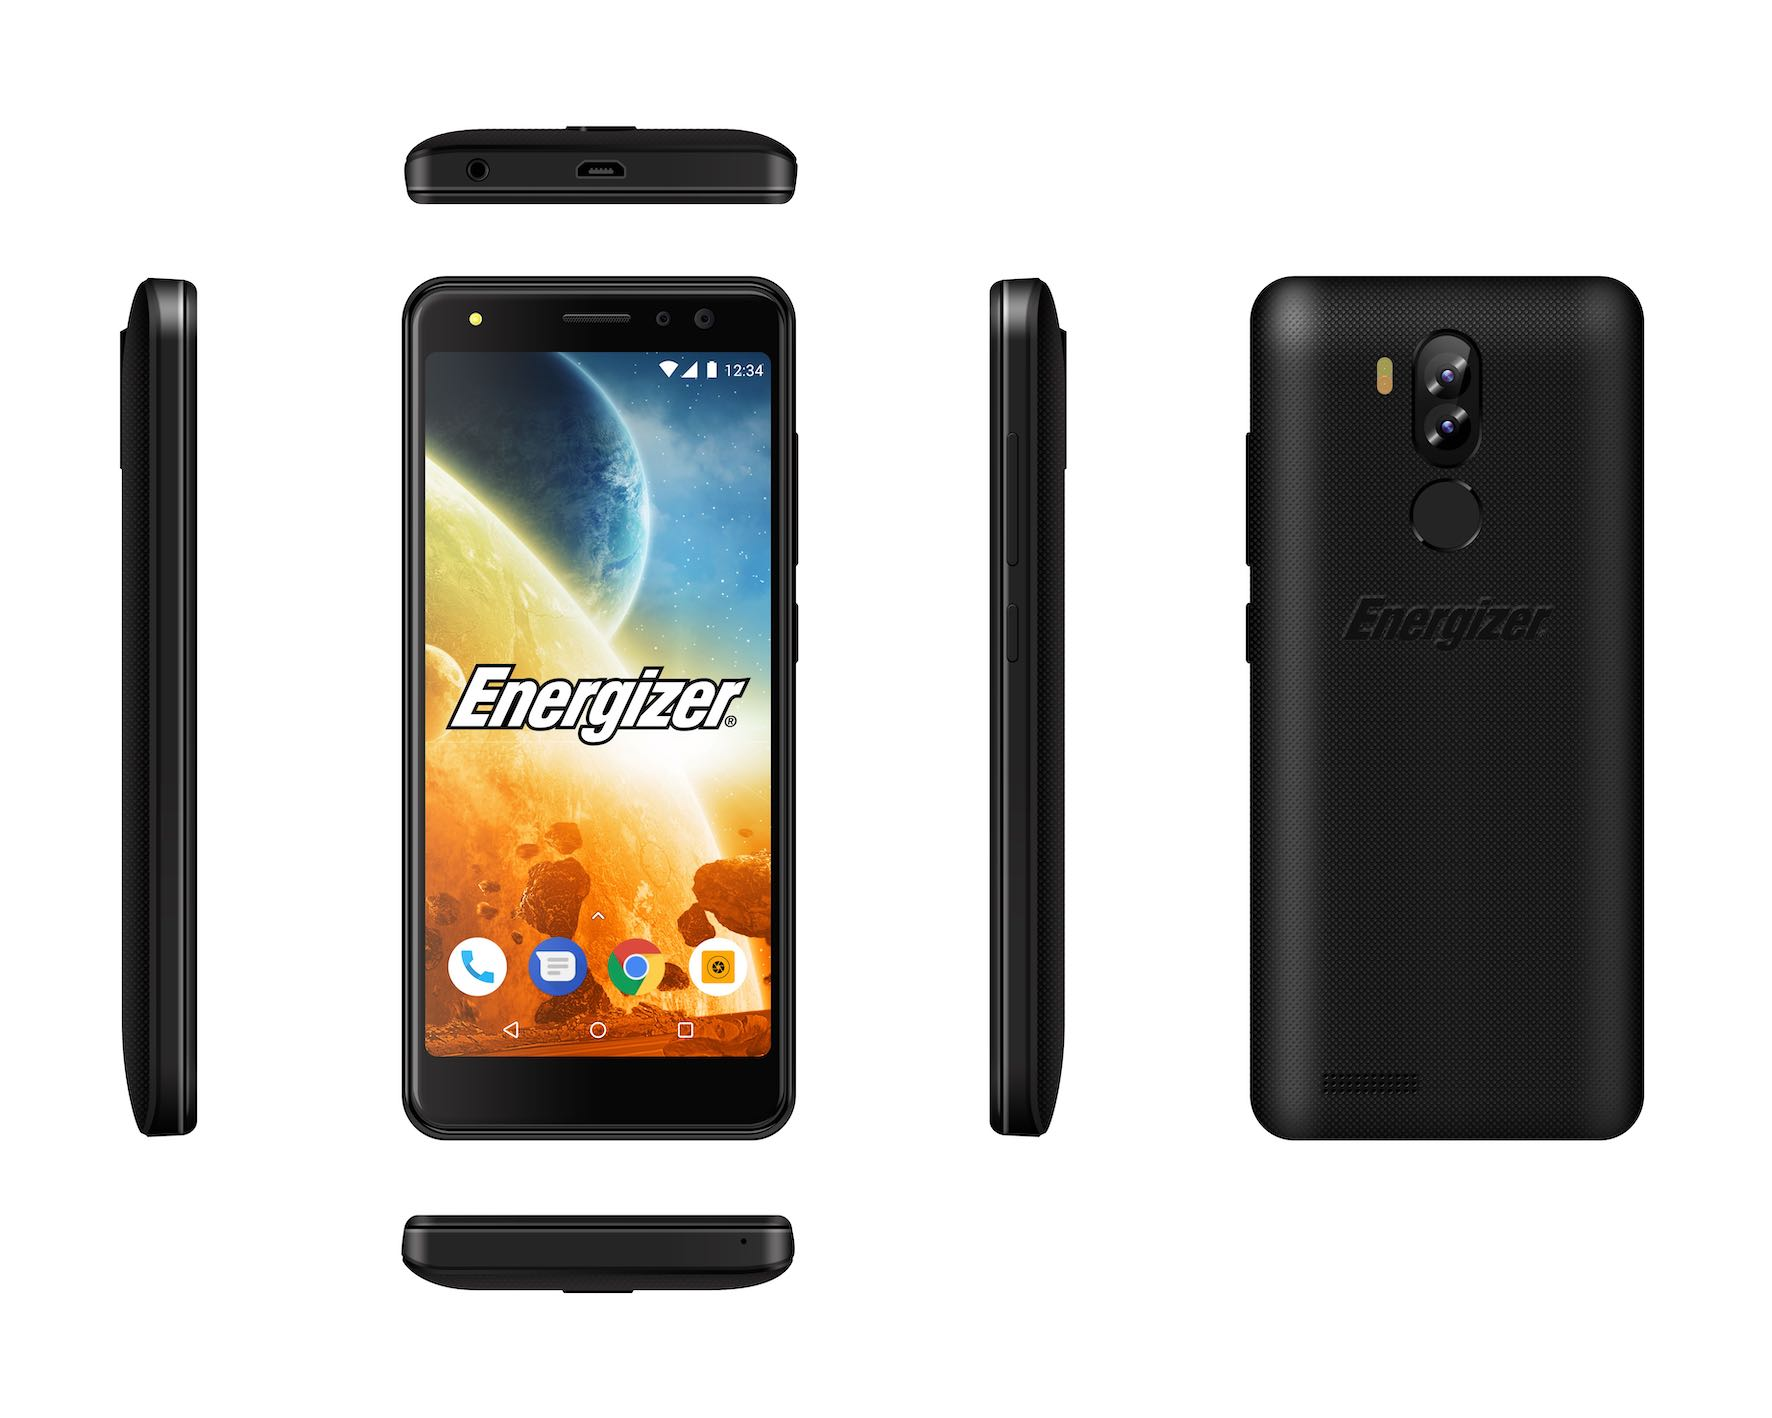 Take a look at the Energizer Power Max P490S smartphone